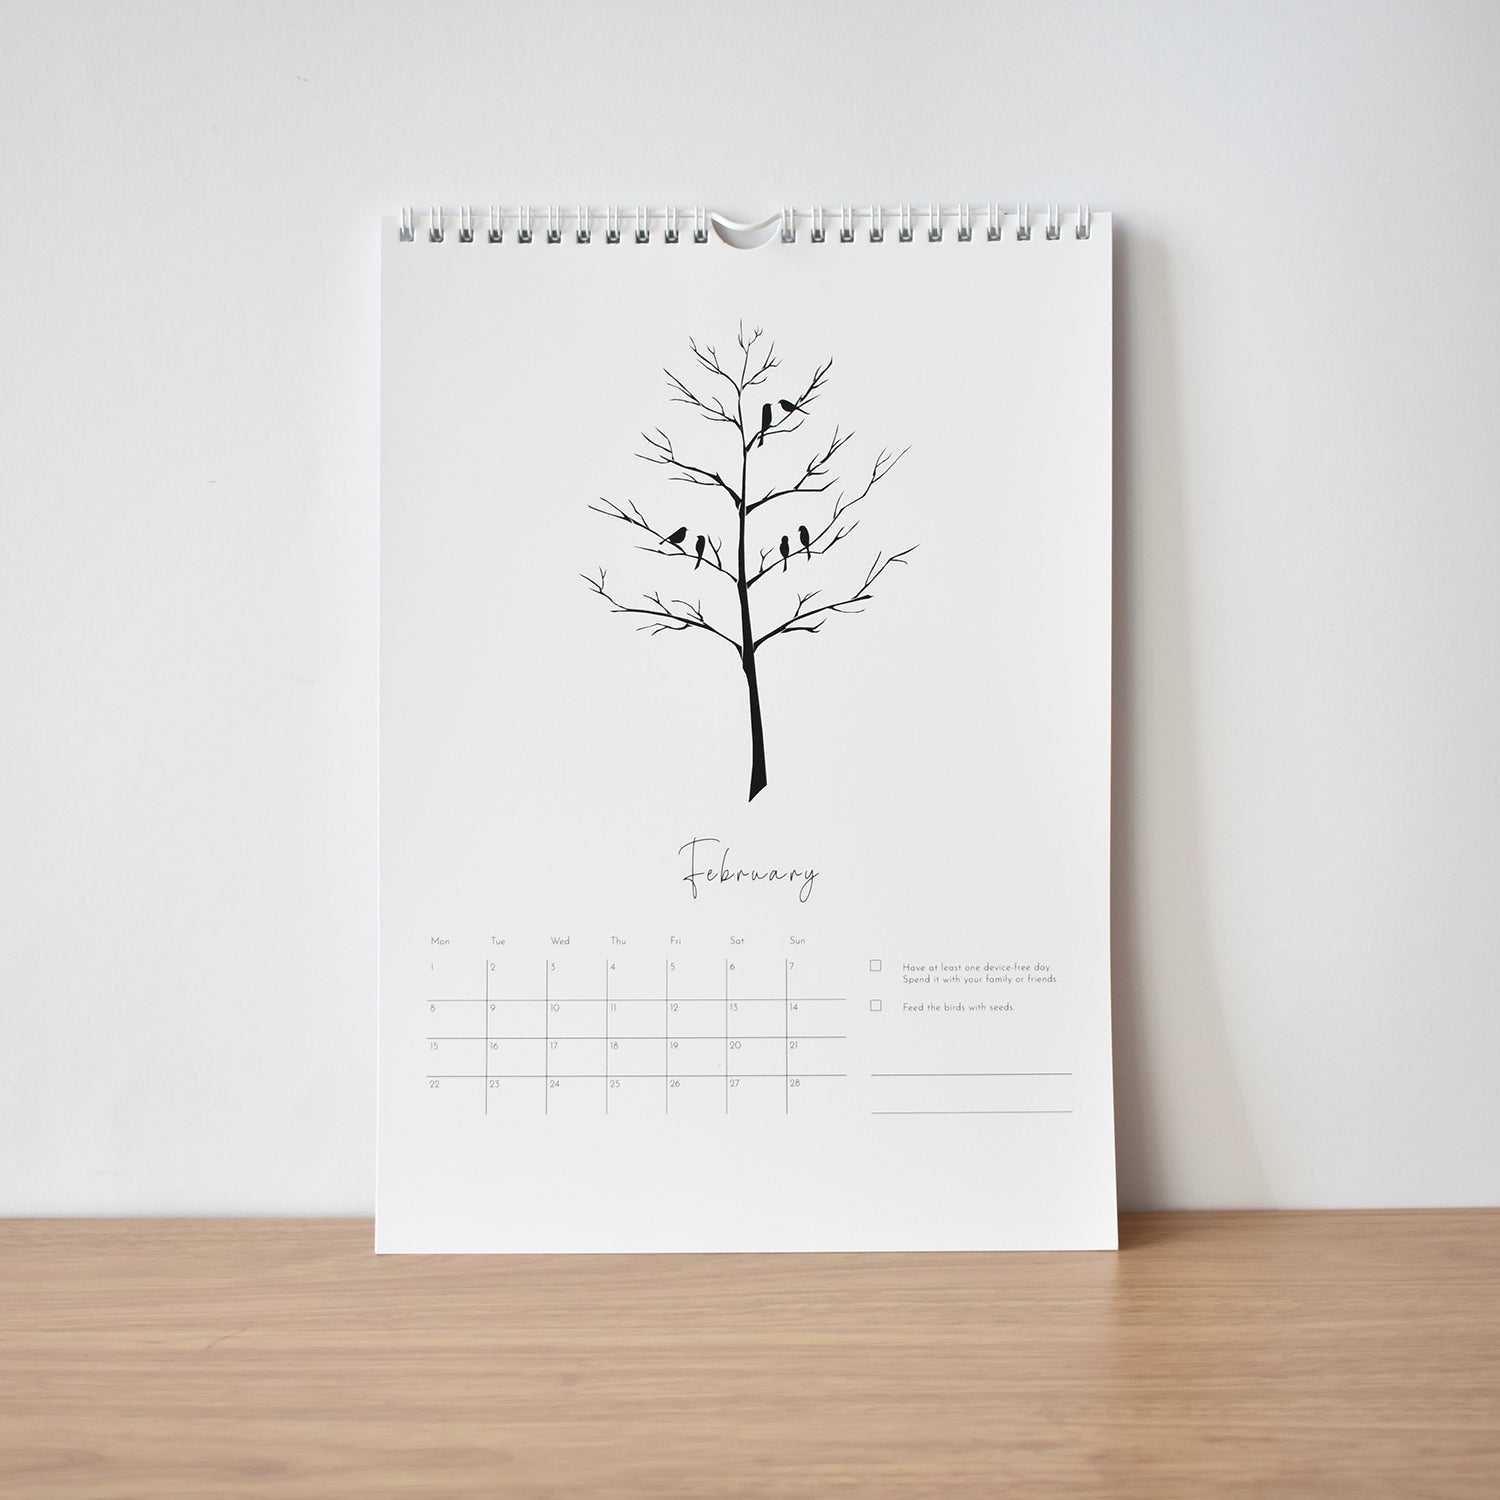 February Kindness & happiness calendar 2021 elemente design birds on a tree